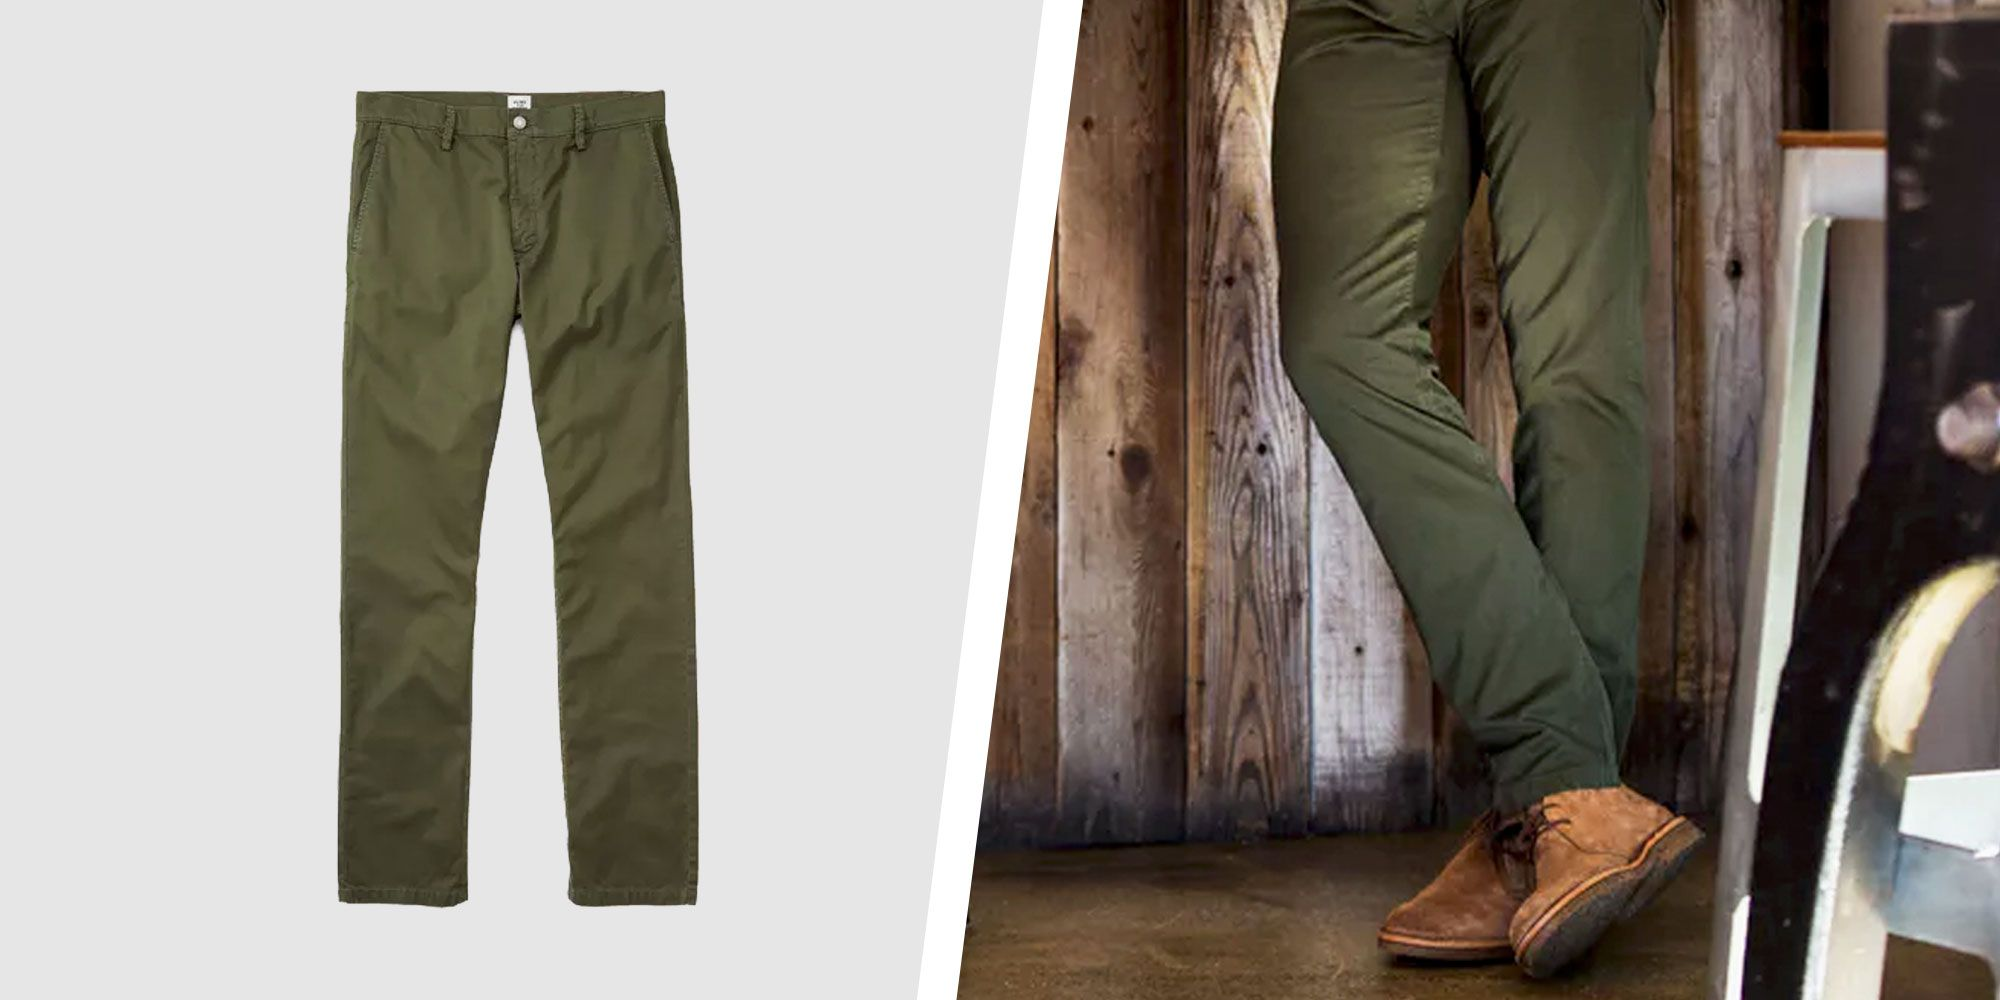 a3186e27 9 Best Chinos for Men 2019 - How to Choose Chino Pants